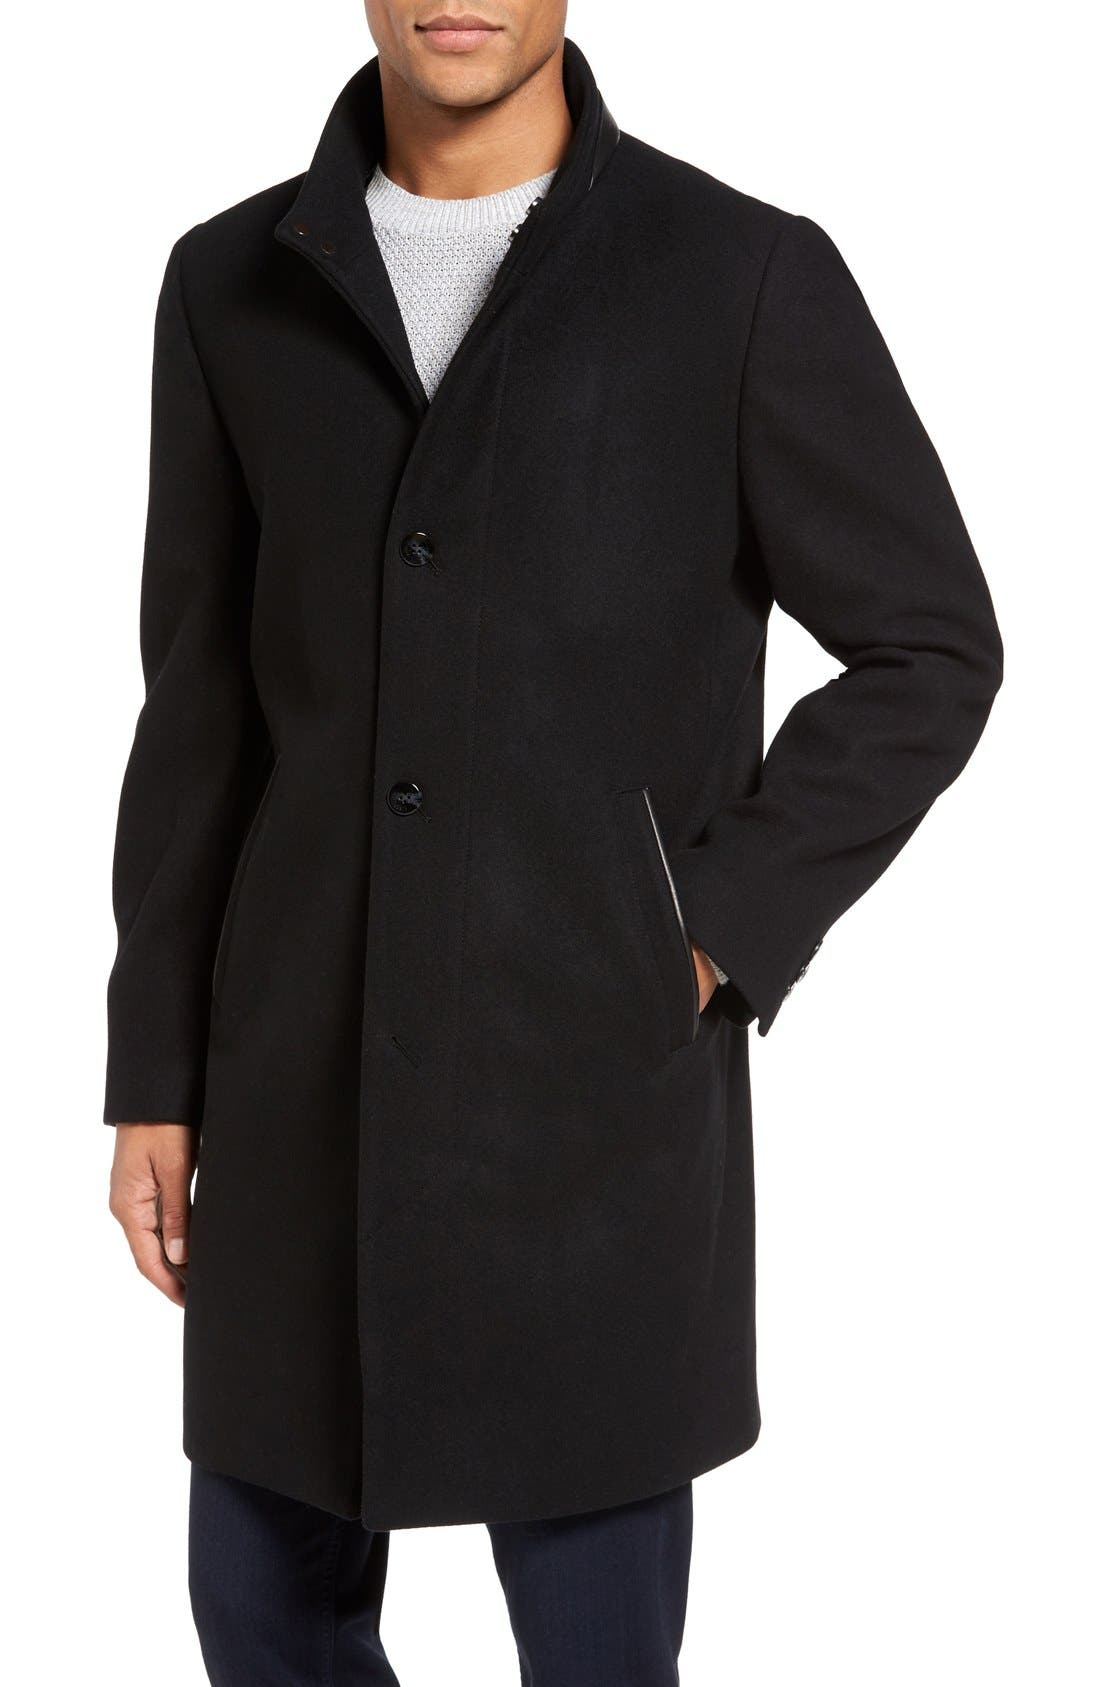 Hooded Campus Coat,                             Alternate thumbnail 4, color,                             Black